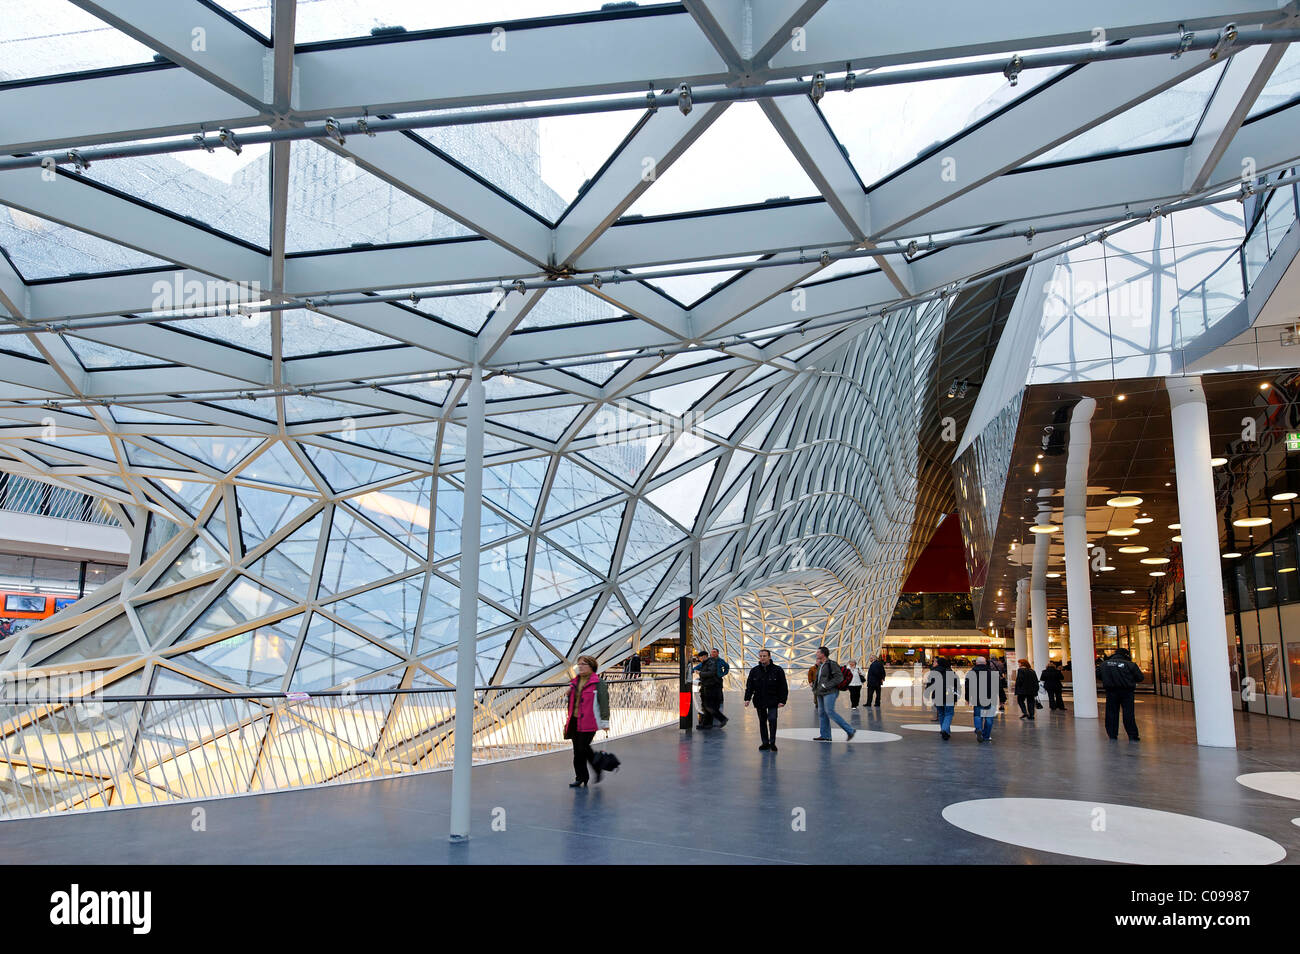 Architekt Frankfurt Myzeil Shopping Mall Palais Quartier Architect